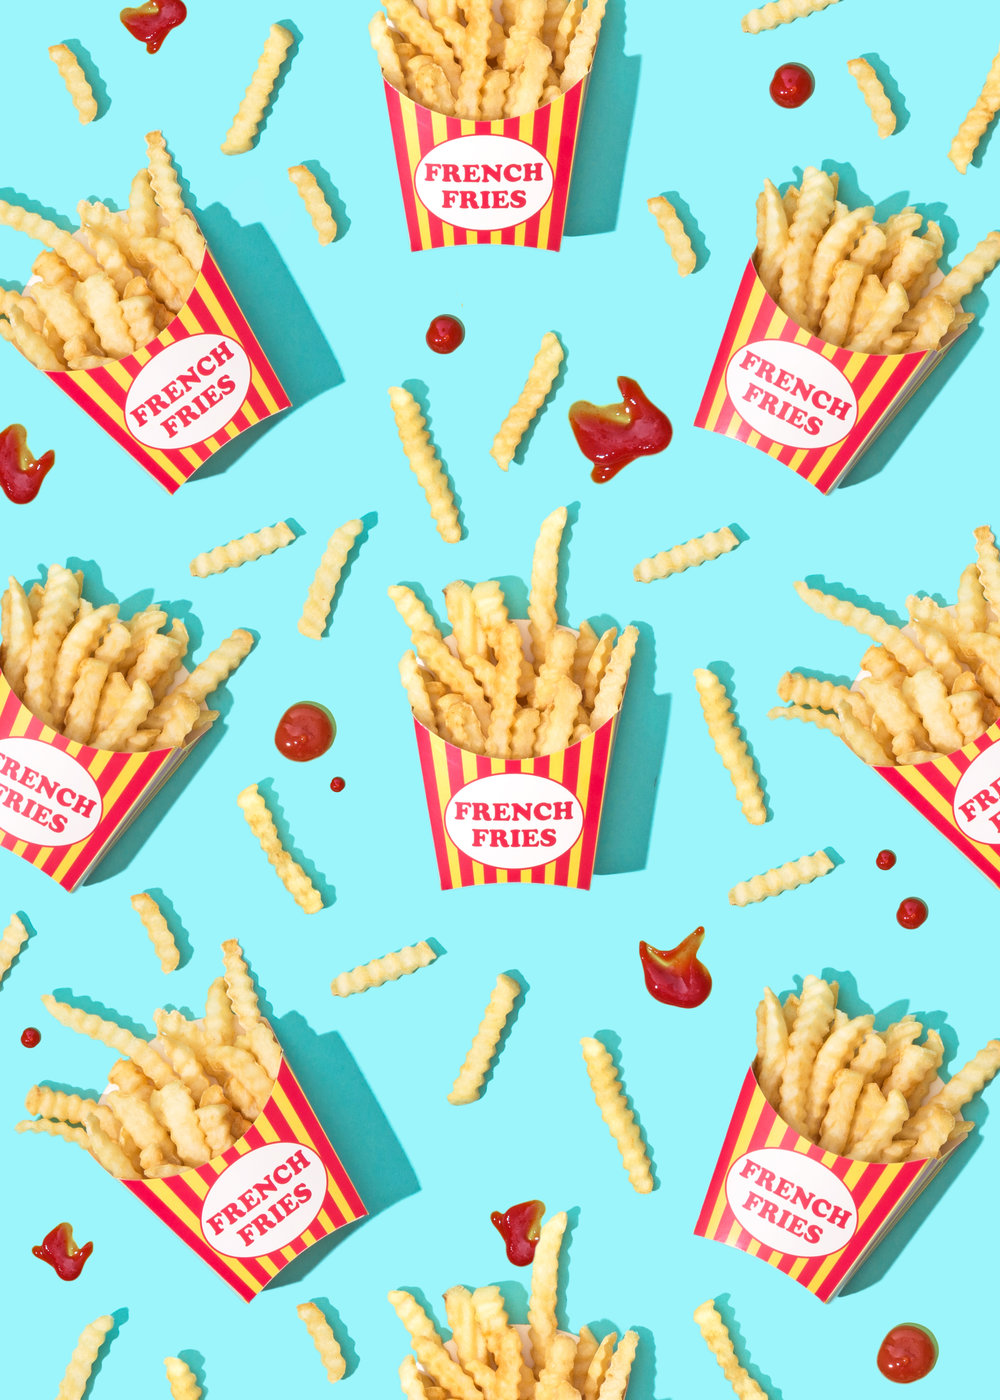 National French Fry Day Wallpaper Download Violet Tinder Studios 1000x1400